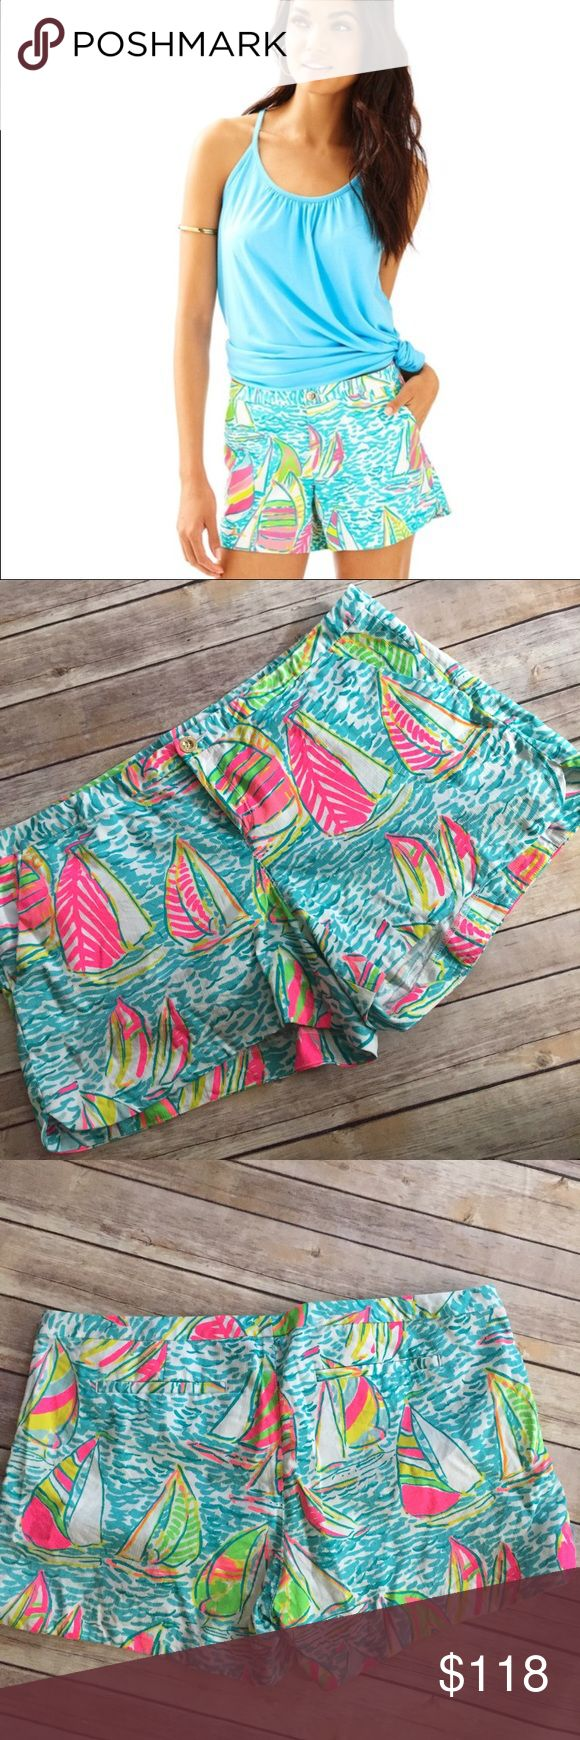 """Size 14 You Gotta Regatta Addie 4"""" Short Size 14 You Gotta Regatta Addie 4"""" Short by Lilly Pulitzer. EUC. Out of stock. Super cute shorts!!! Essential preppy girl style. Exact measurements pictured. No trades price firm Lilly Pulitzer Shorts"""